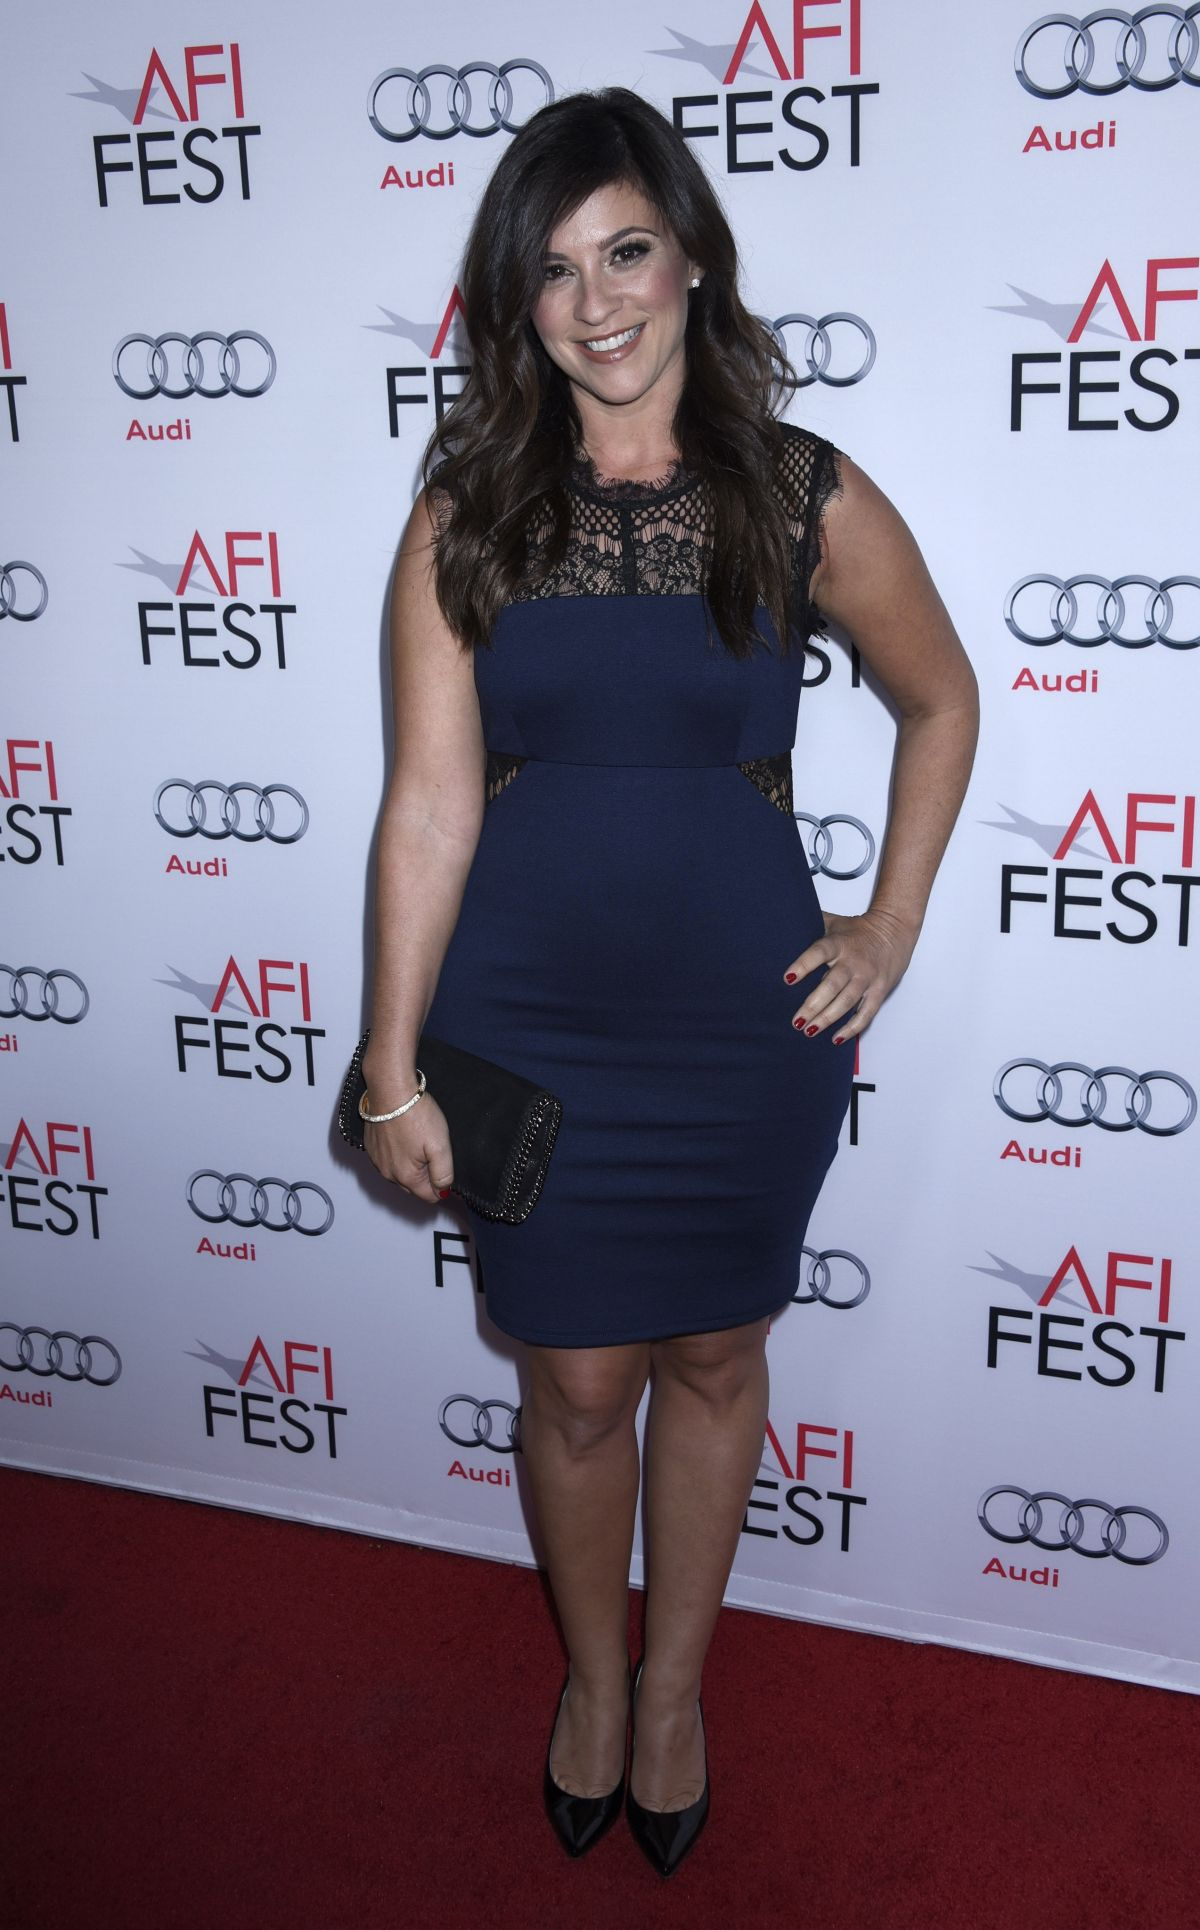 GINA FIELD at AFI Fest 2015 Centerpiece Gala in Hollywood 11/07/2015